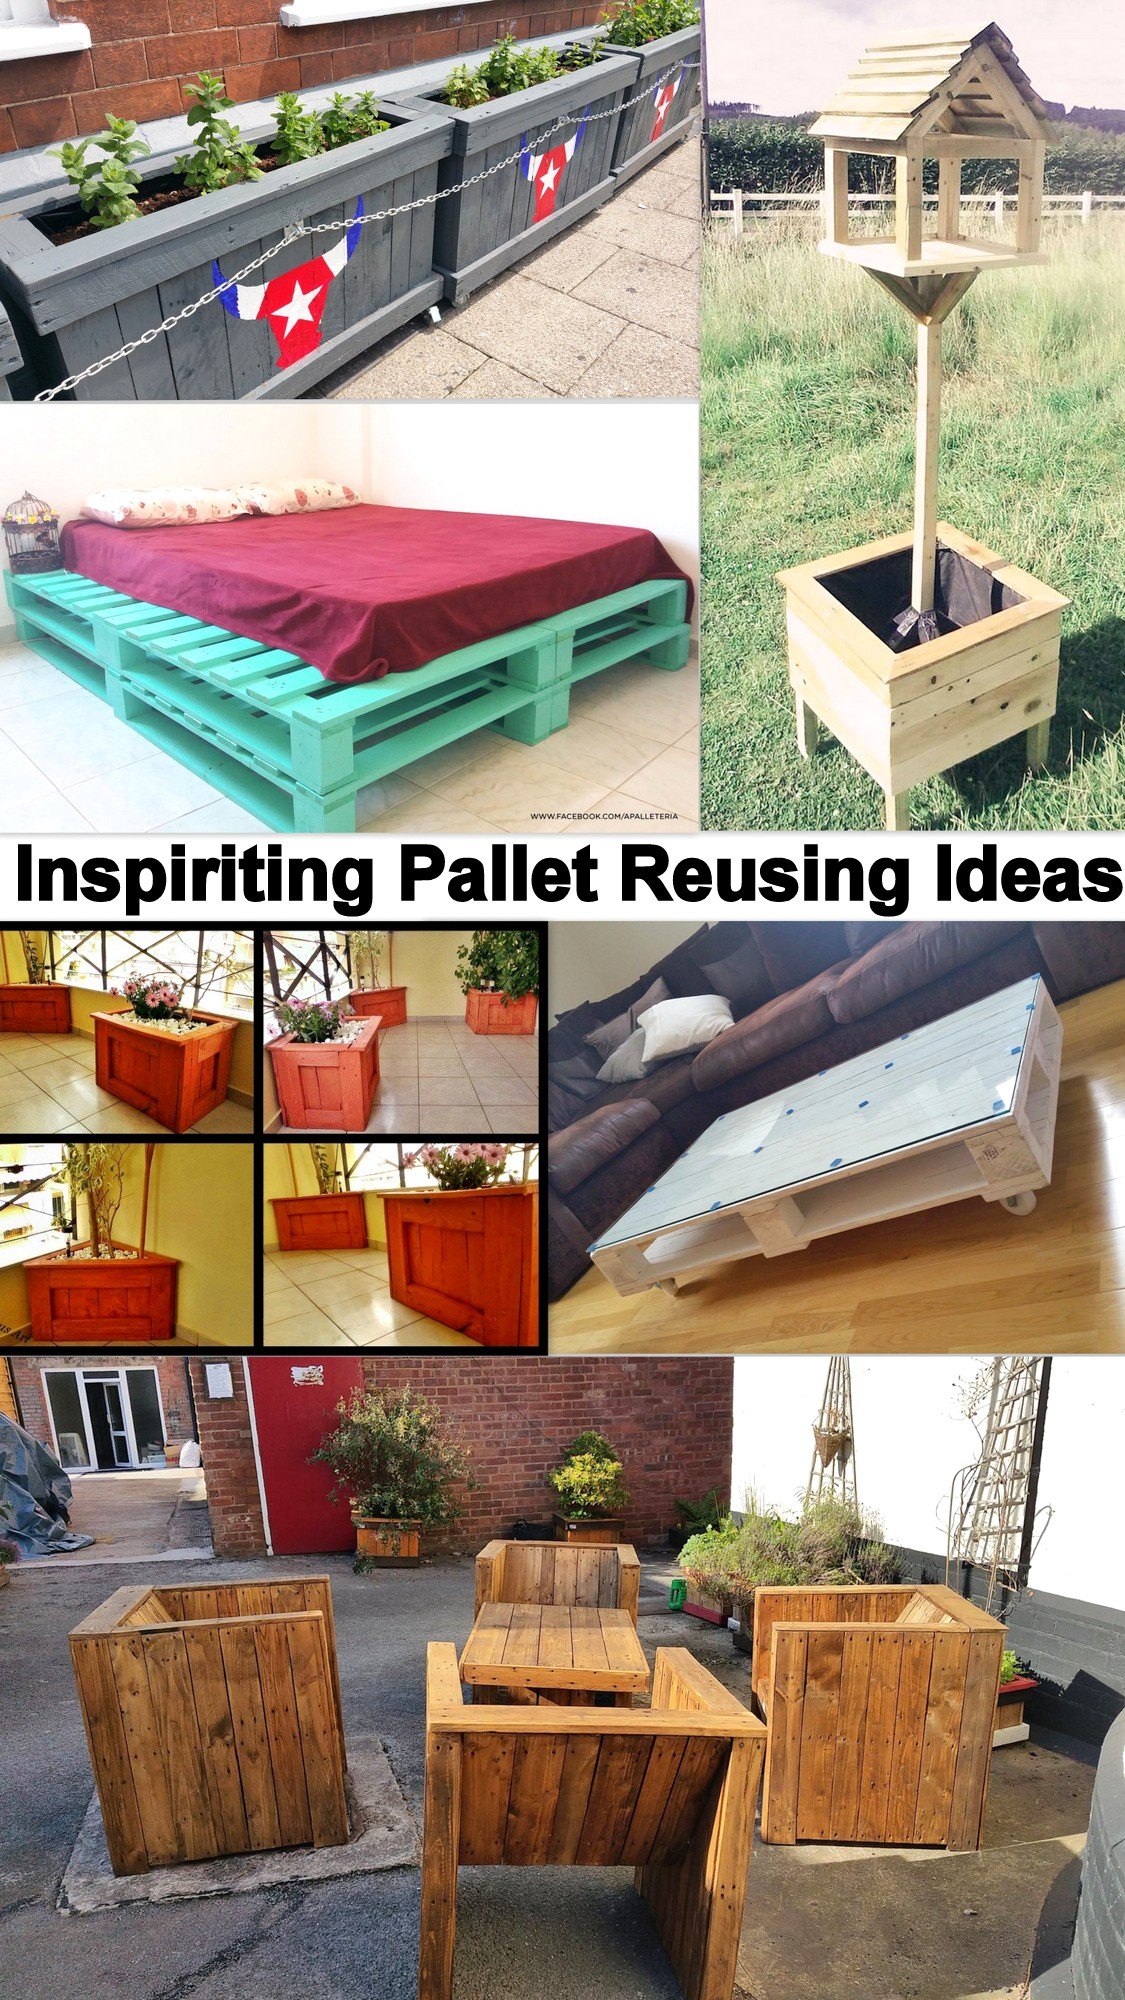 Inspiriting Pallet Reusing Ideas